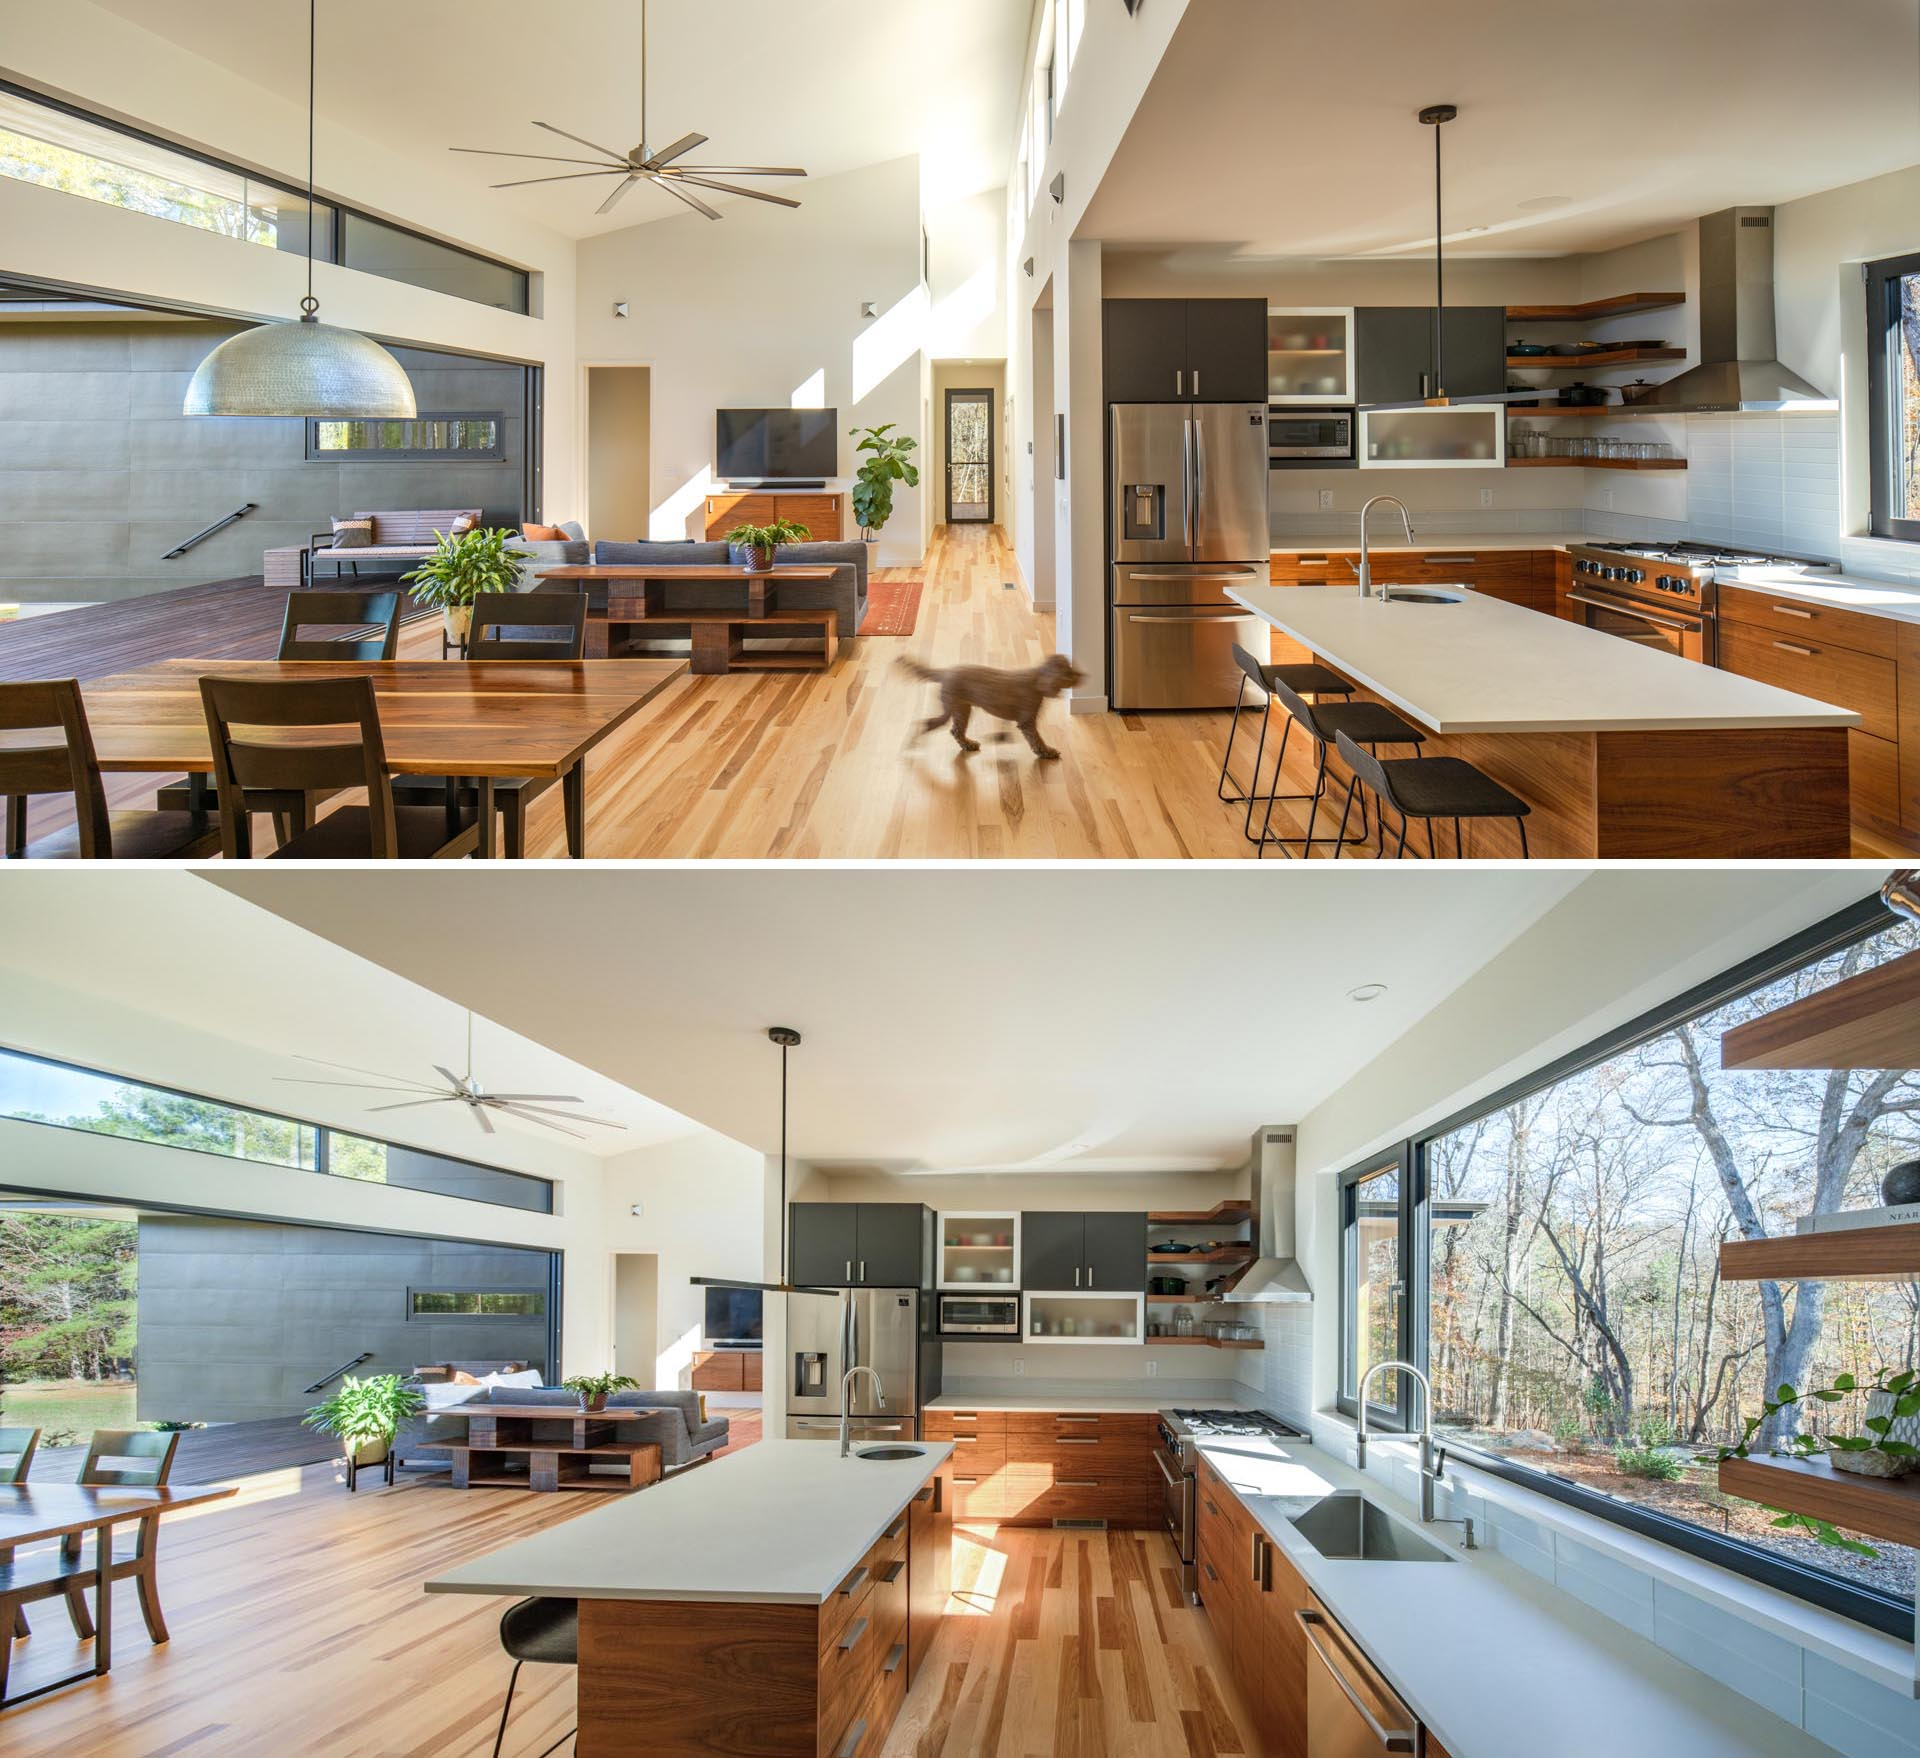 The kitchen in this modern home is adjacent to the living room and dining room, and includes an island with wood cabinetry and white countertops.